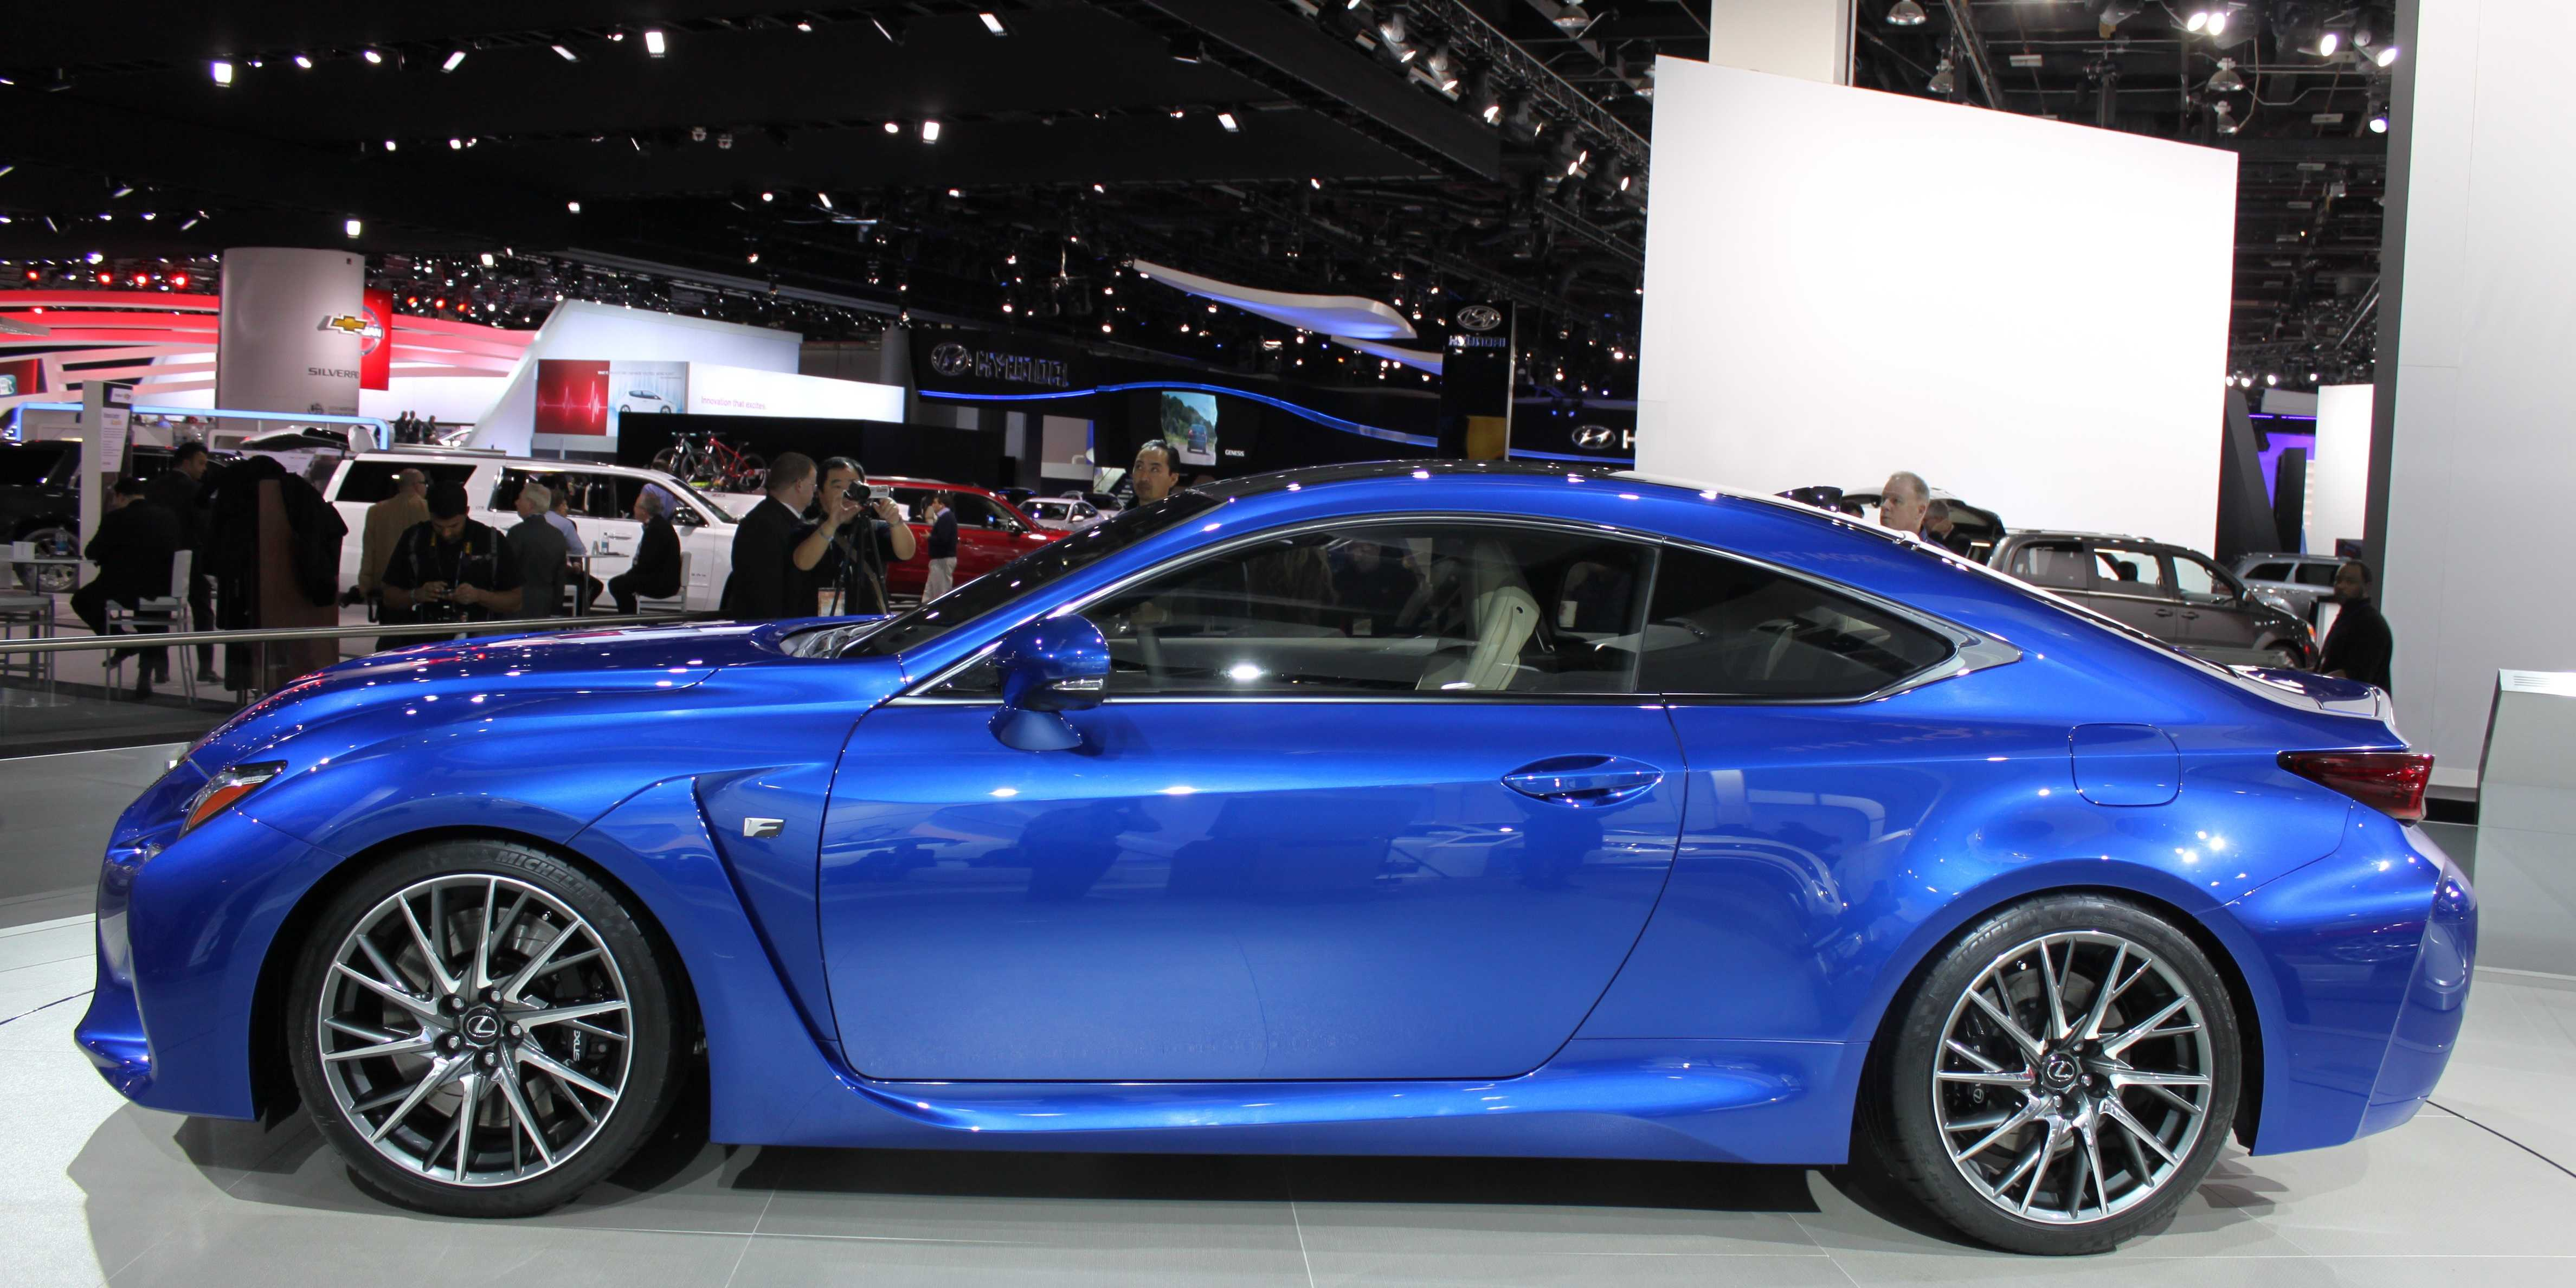 check-out-the-beautiful-and-powerful-lexus-rc-f-coupe